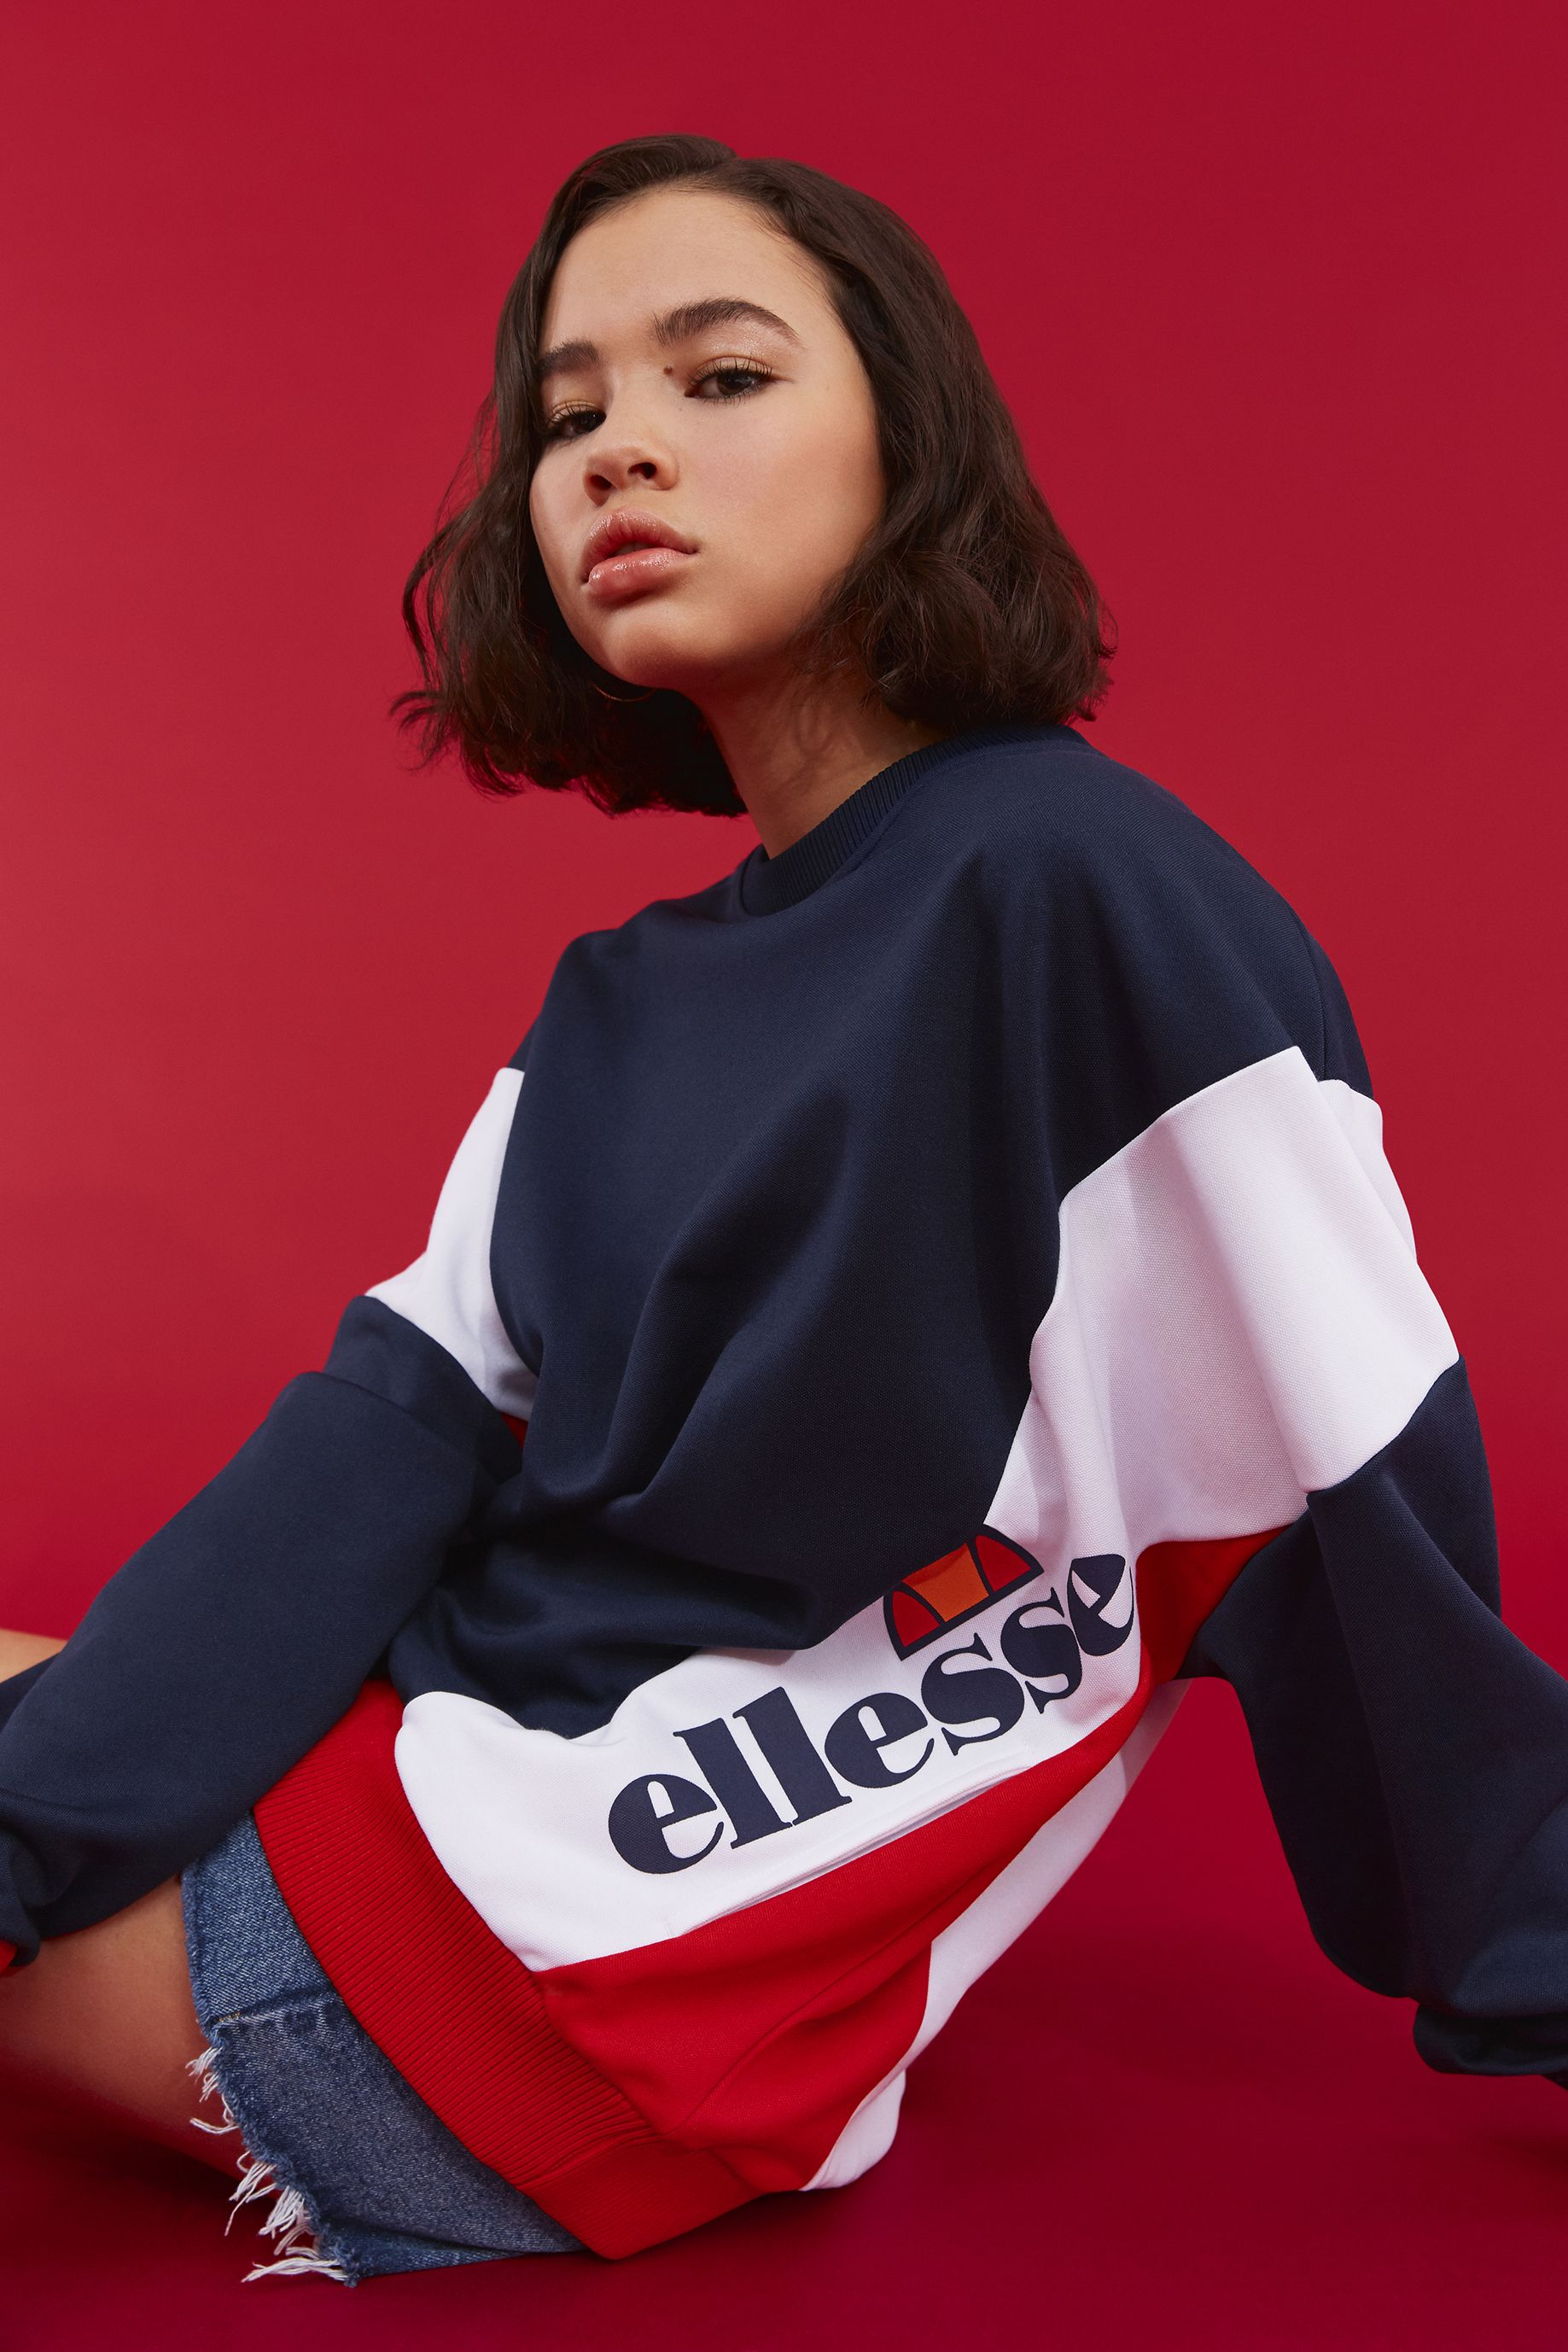 ellesse, ellesse clothing, trend, fashion, style, hoodie, hood, sweatshirt, sweater, ellesse hoodie, ellesse hood, ellesse sweatshirt, ellesse spring, ellesse new collection, spring collection, ellesse trend, ellesse women, ellesse men,